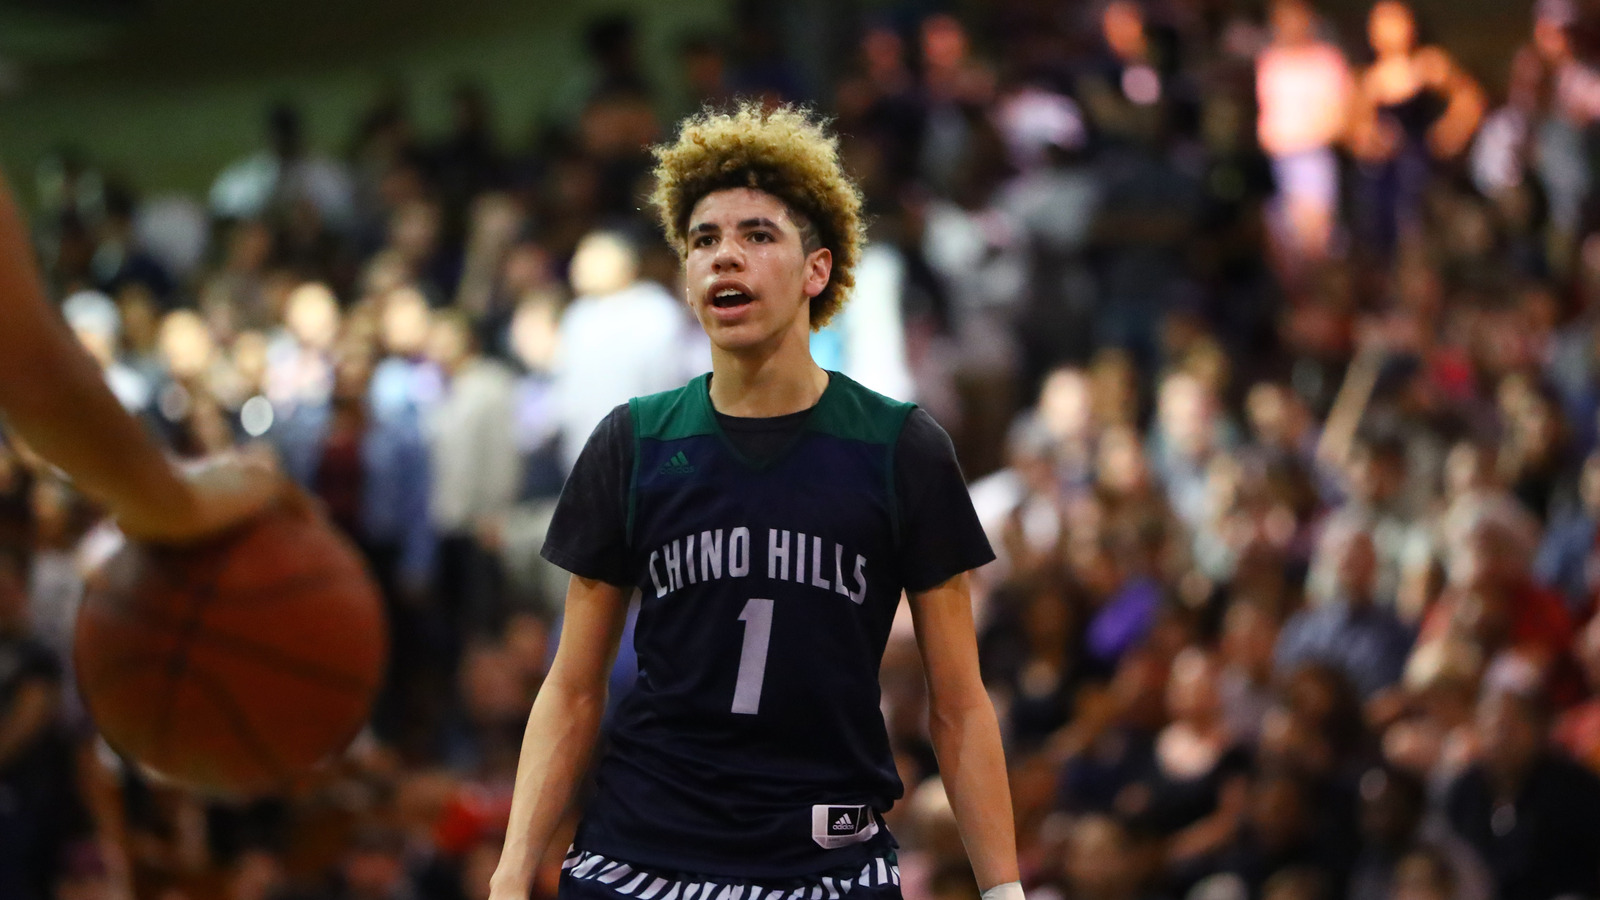 Volleyball Wallpaper Iphone Mocking 15 Year Old Lamelo Ball Is Taking Things A Bit Too